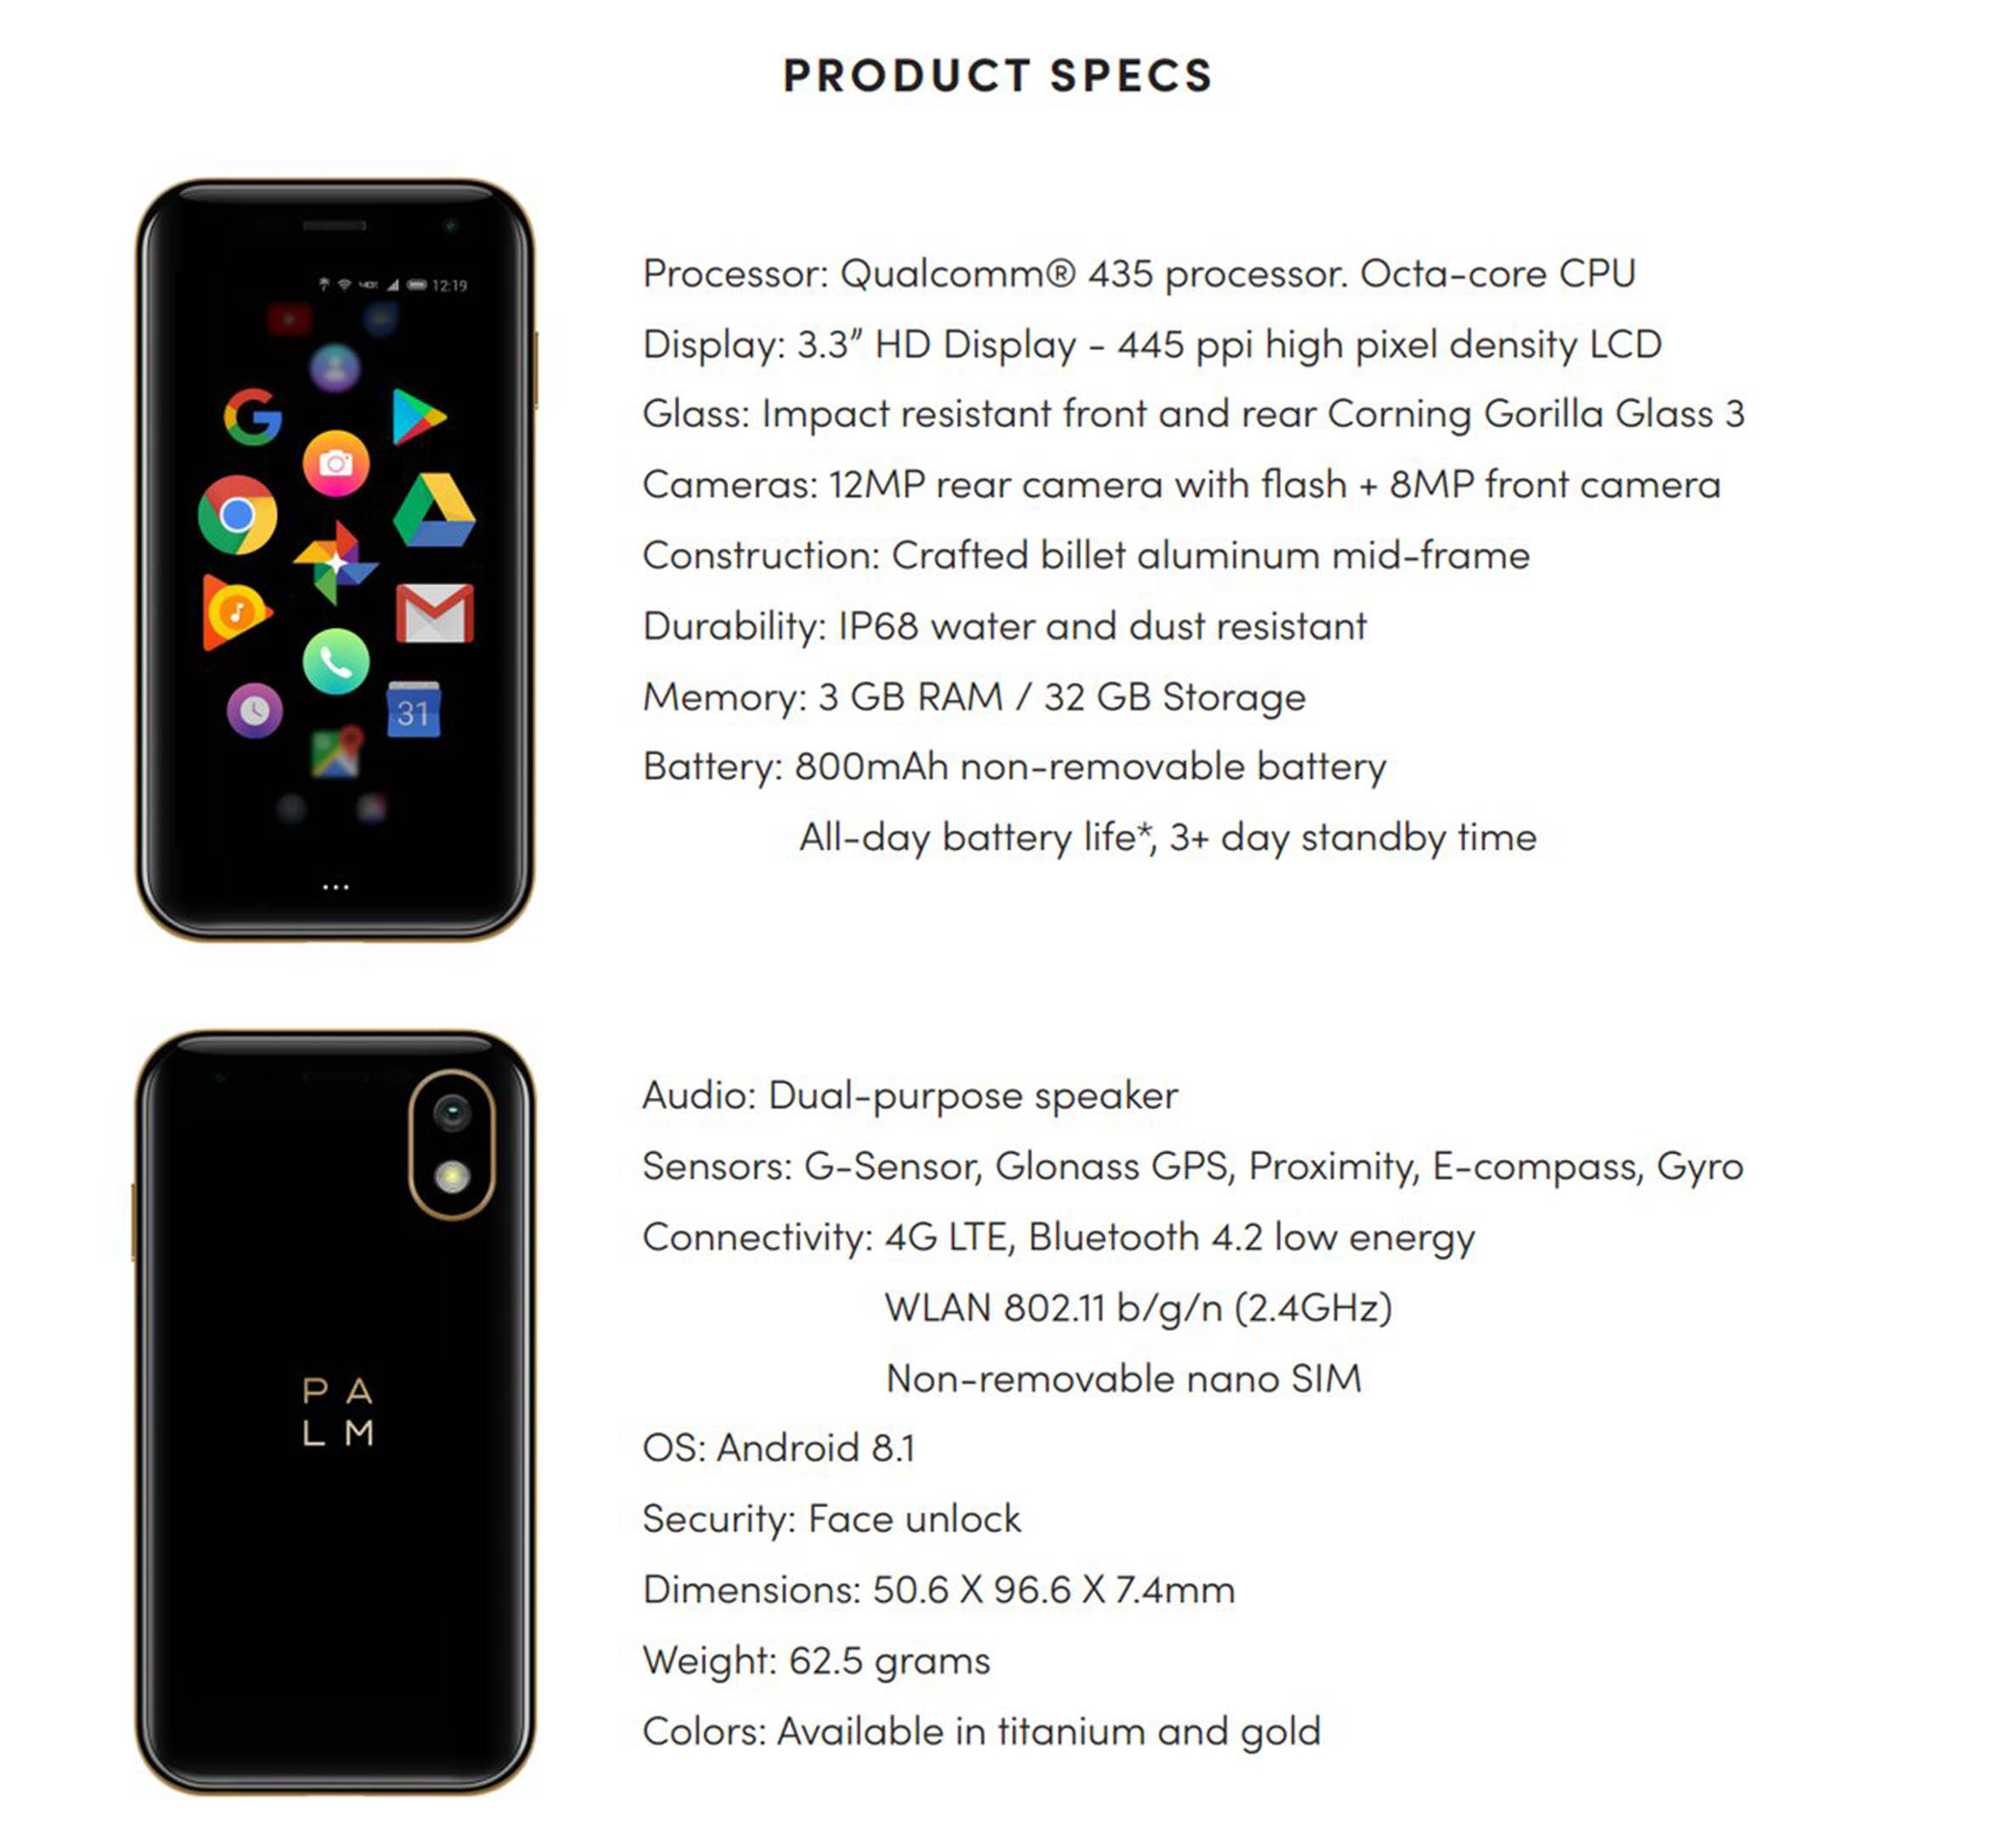 Palm product specs